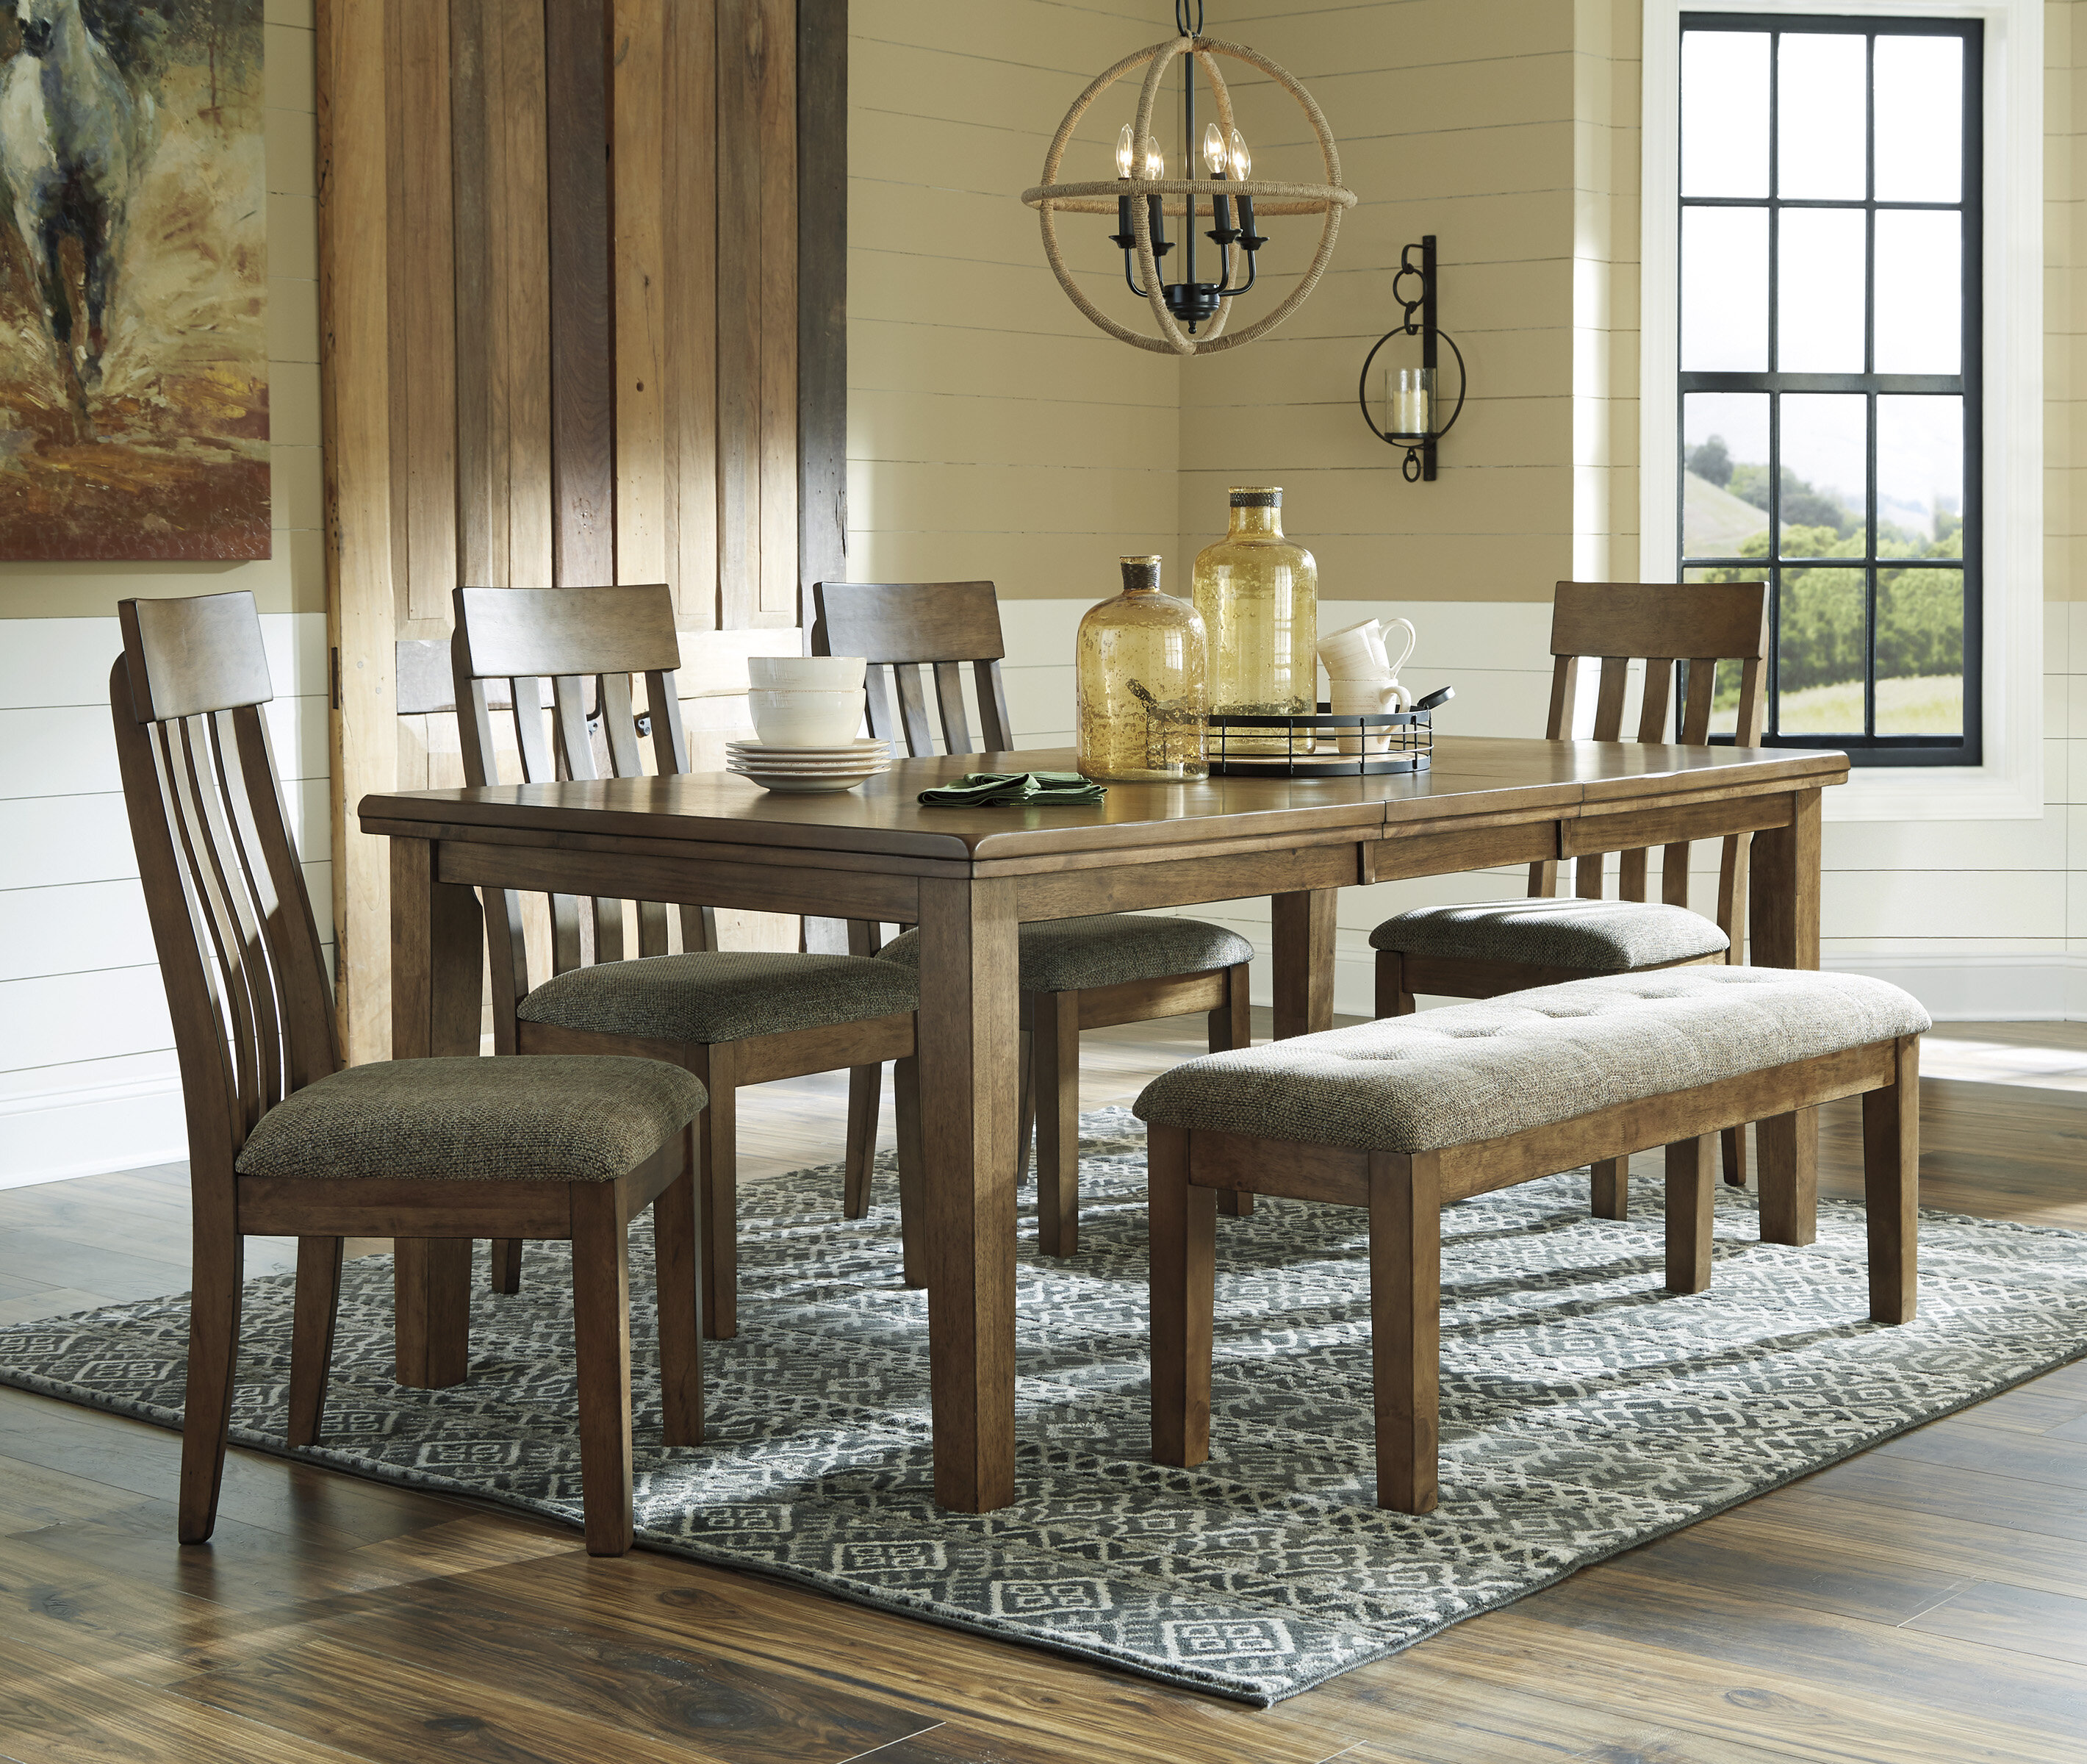 6 Piece Cabin Lodge Kitchen Dining Room Sets You Ll Love In 2021 Wayfair